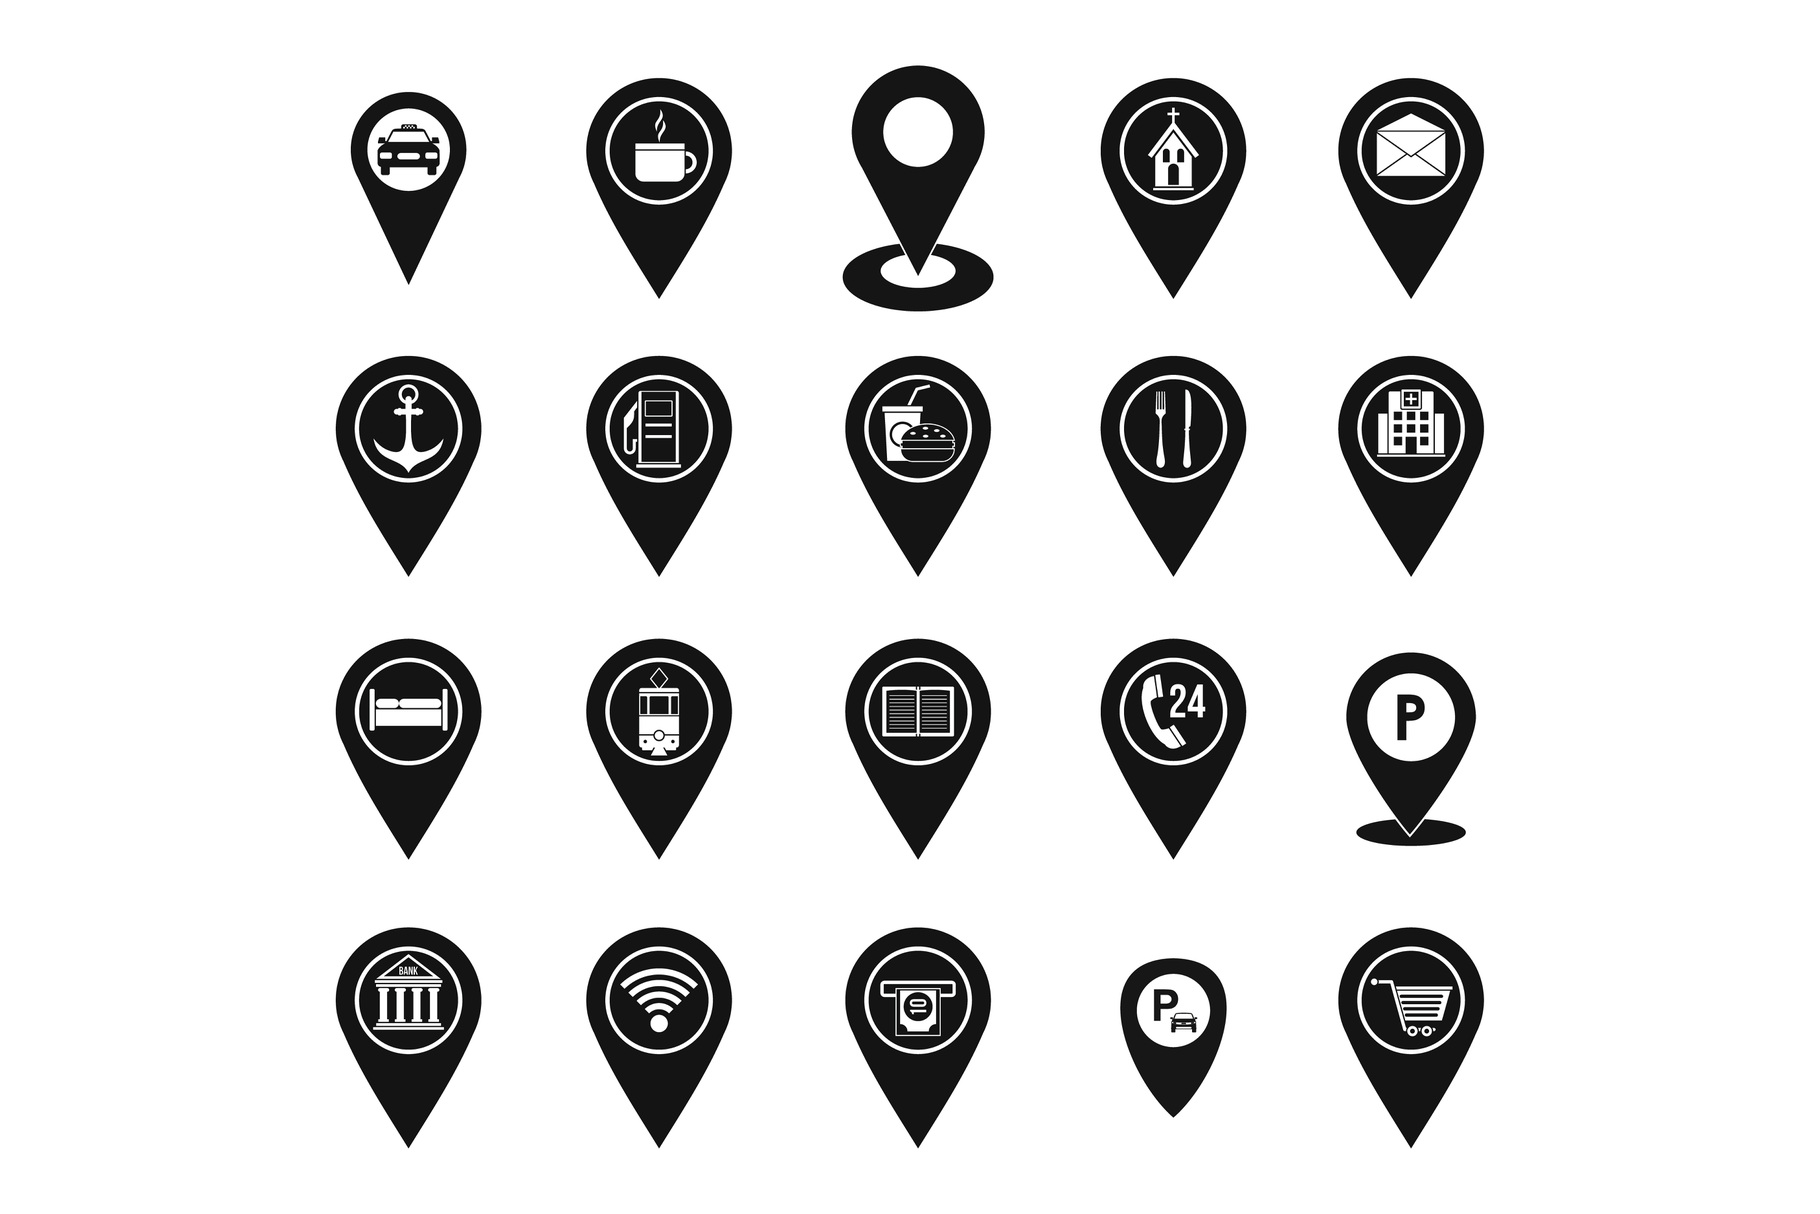 Map pins icon set, simple style example image 1